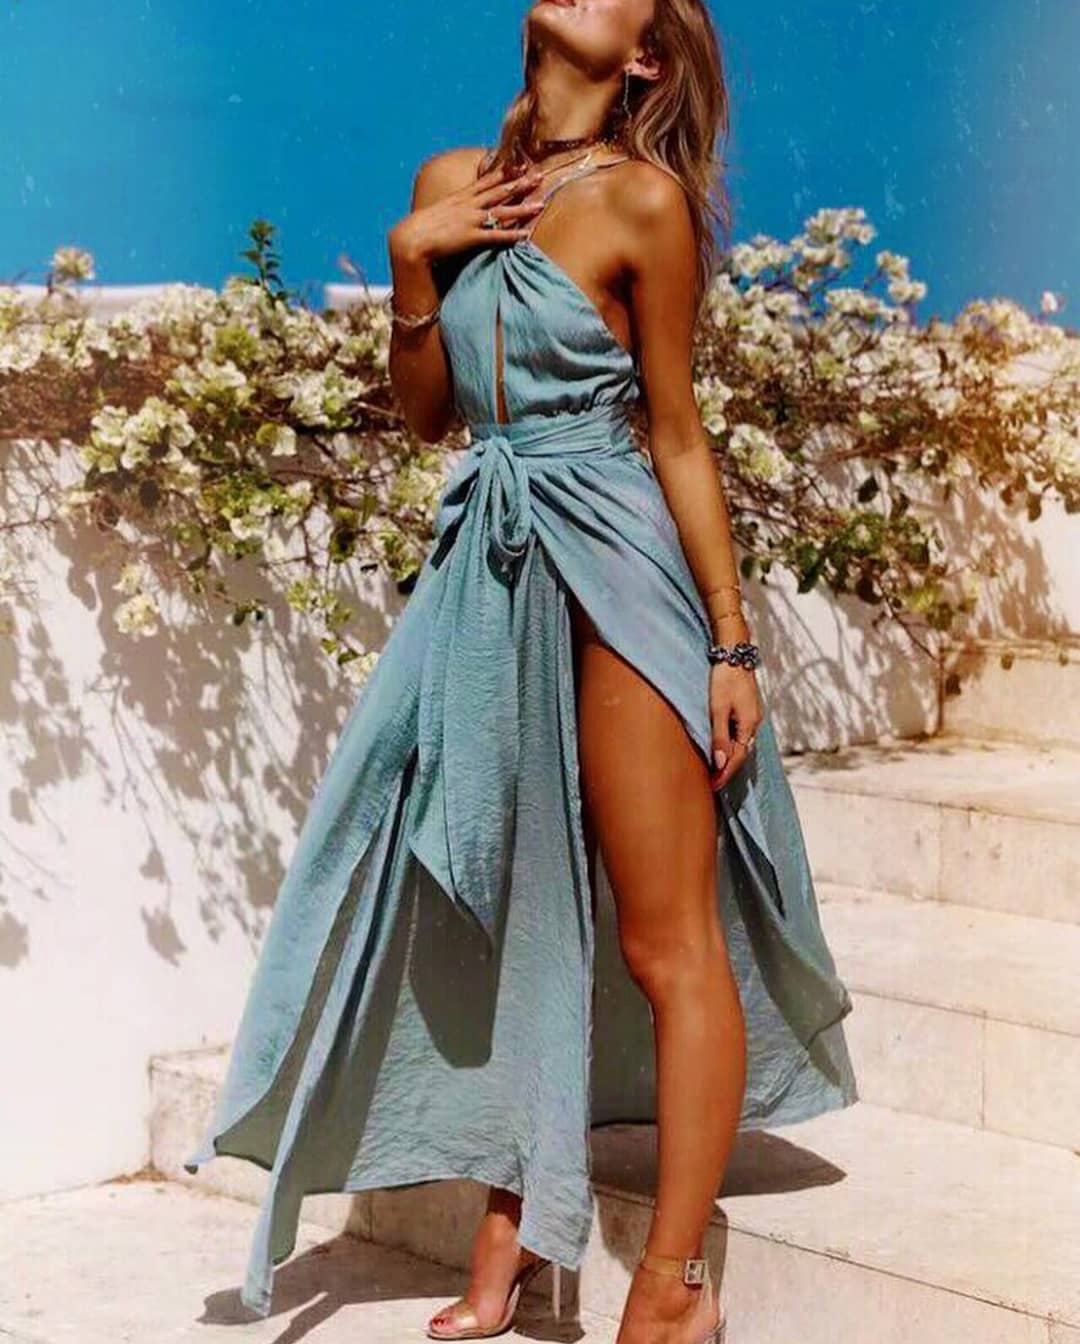 Boho Greek Style Turquoise Dress For Summer 2020